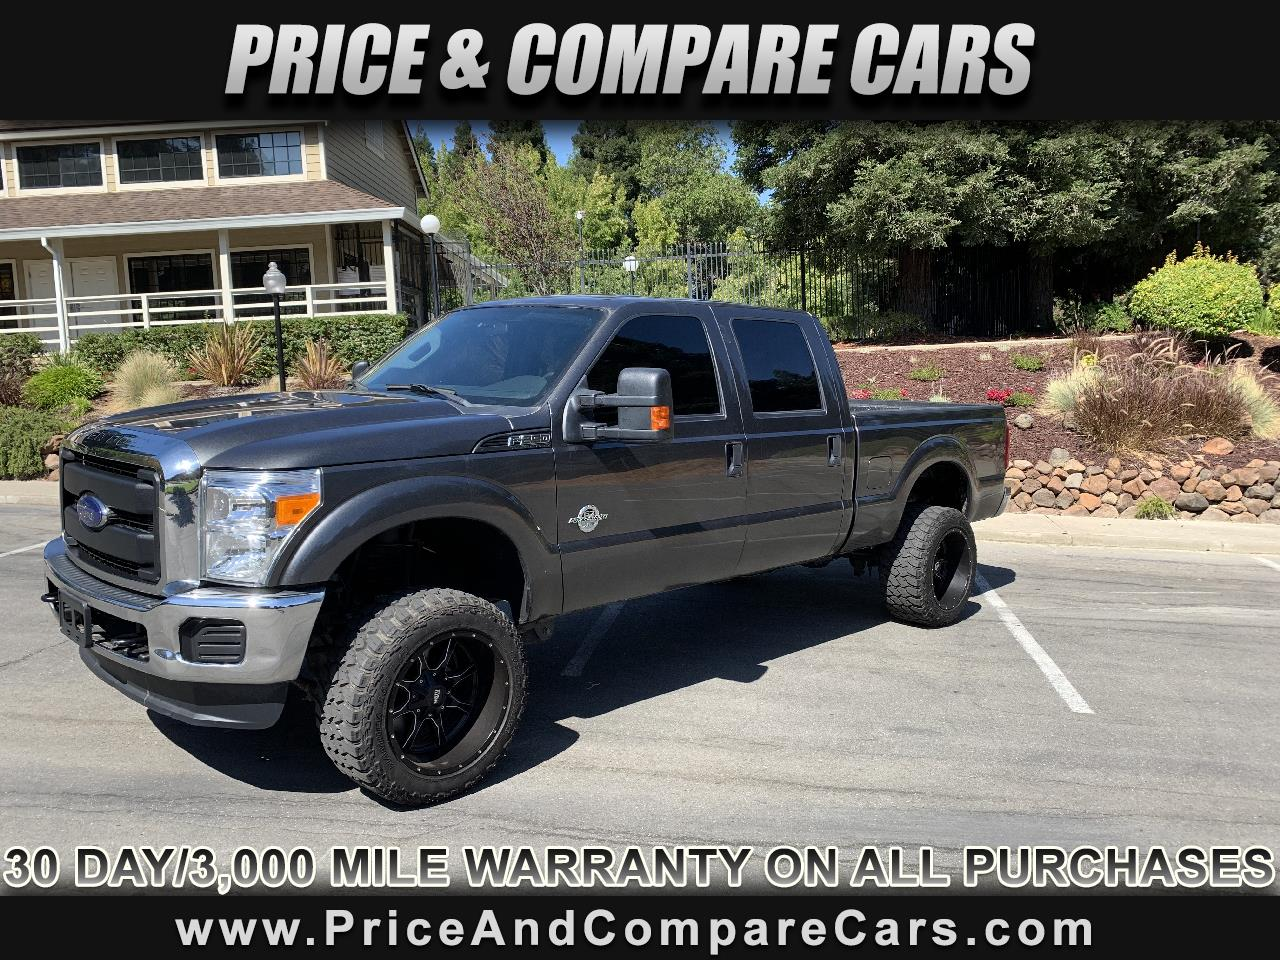 2016 Ford F-250 SD XLT CREW CAB 4X4 POWERSTROKE DIESEL LIFTED